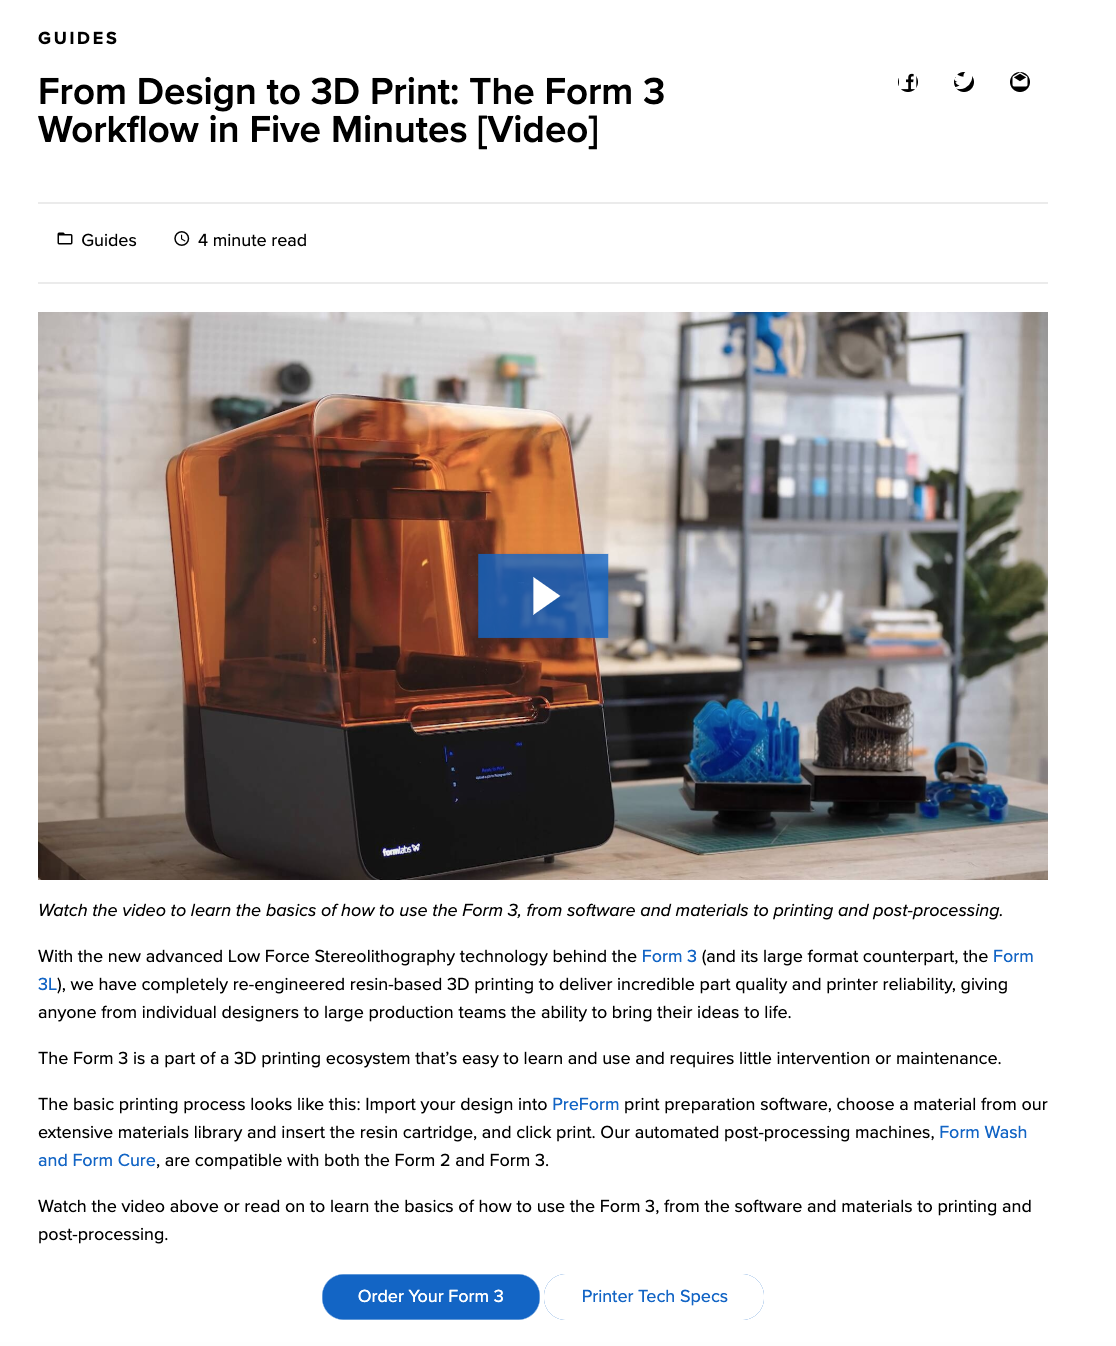 Blog: From Design to 3D Print: The Form 3 Workflow in Five Minutes [Video]